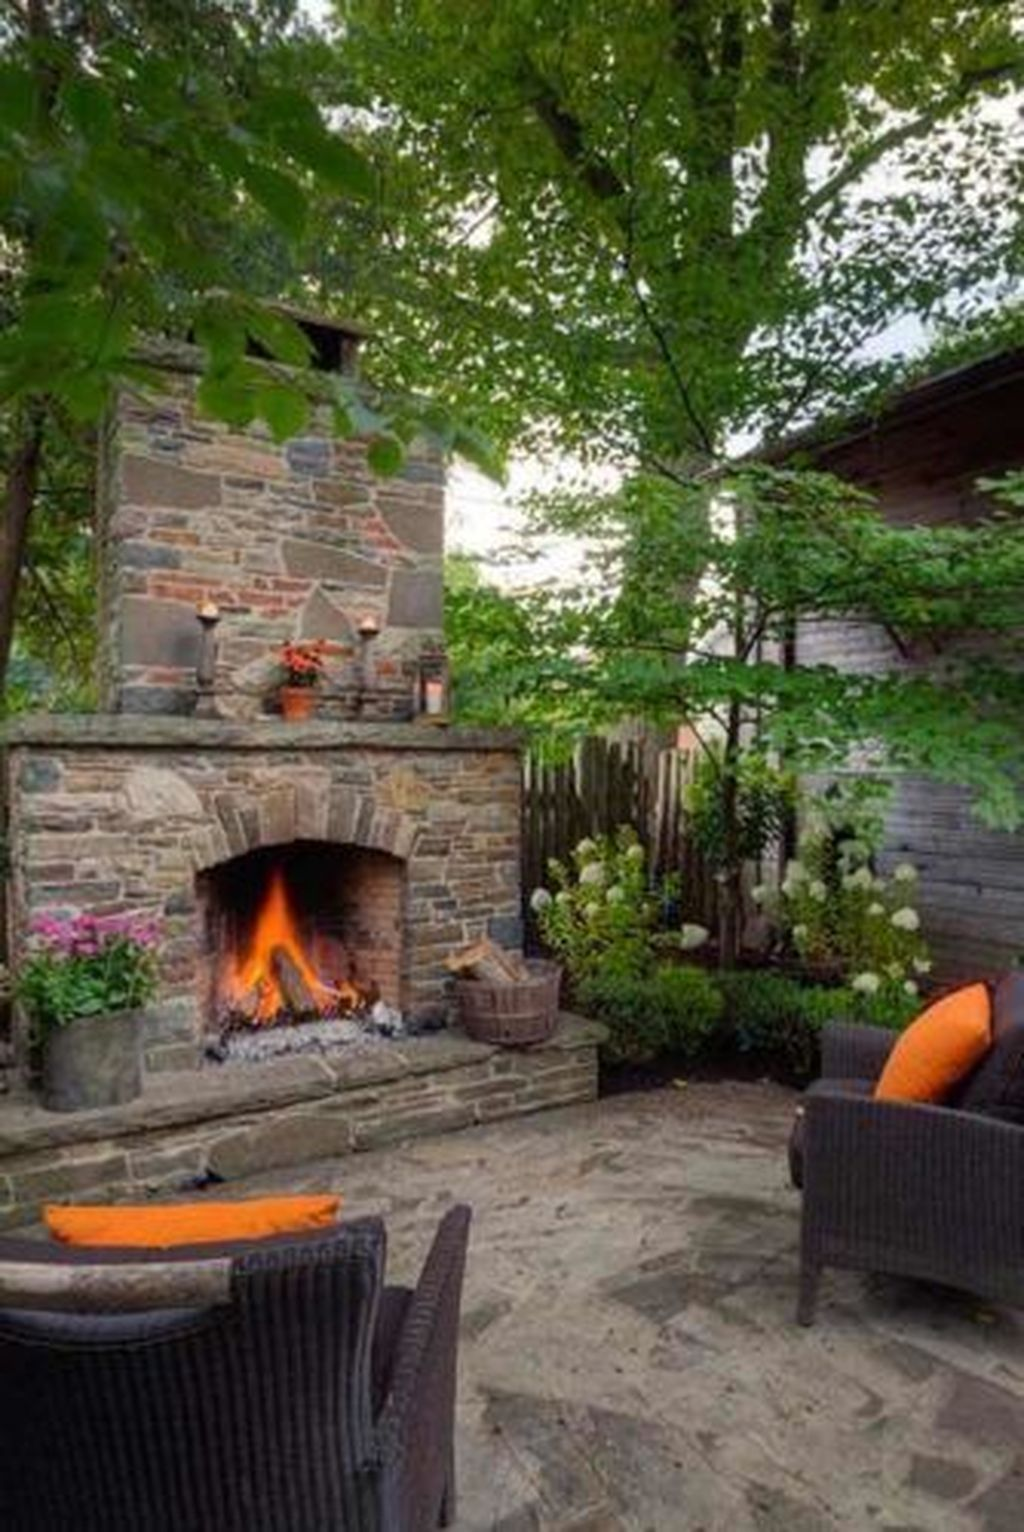 35 Relaxing Outdoor Fireplaces For Your Patio Or Backyard With